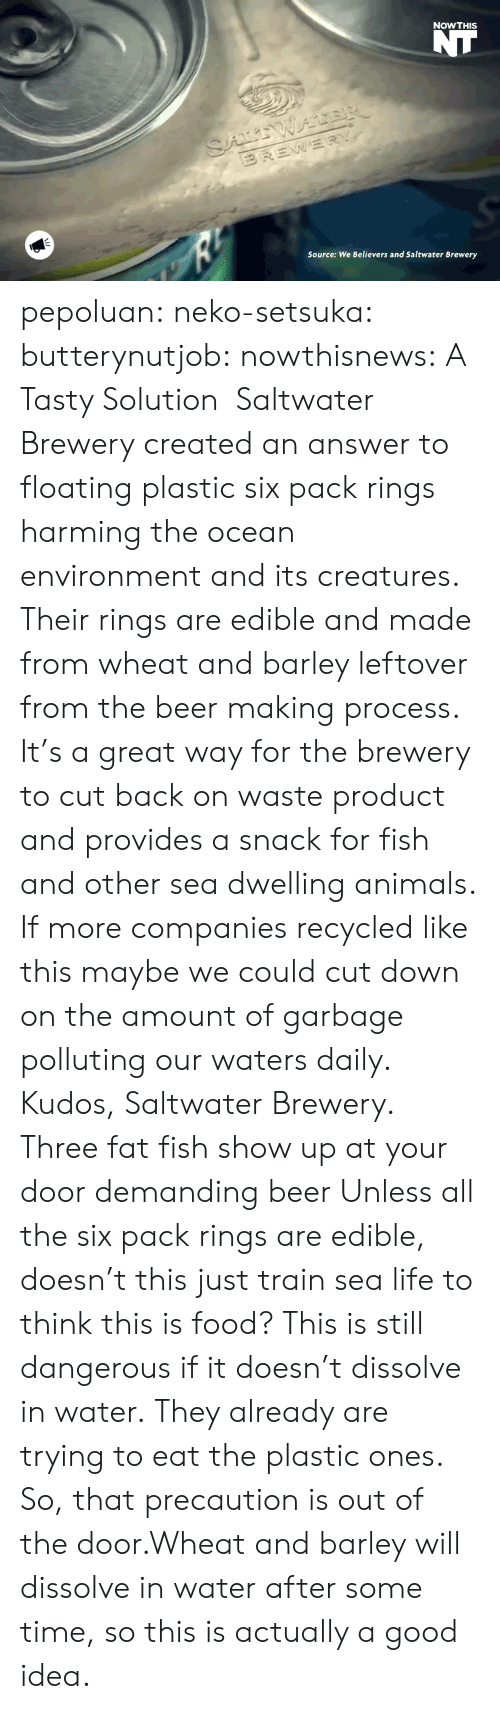 precaution: NOWTHIS  Source: We Believers and Saltwater Brewery pepoluan:  neko-setsuka:  butterynutjob:  nowthisnews:  A Tasty Solution   Saltwater Brewery created an answer to floating plastic six pack rings harming the ocean environment and its creatures. Their rings are edible and made from wheat and barley leftover from the beer making process. It's a great way for the brewery to cut back on waste product and provides a snack for fish and other sea dwelling animals. If more companies recycled like this maybe we could cut down on the amount of garbage polluting our waters daily. Kudos, Saltwater Brewery.    Three fat fish show up at your door demanding beer   Unless all the six pack rings are edible, doesn't this just train sea life to think this is food? This is still dangerous if it doesn't dissolve in water.  They already are trying to eat the plastic ones. So, that precaution is out of the door.Wheat and barley will dissolve in water after some time, so this is actually a good idea.